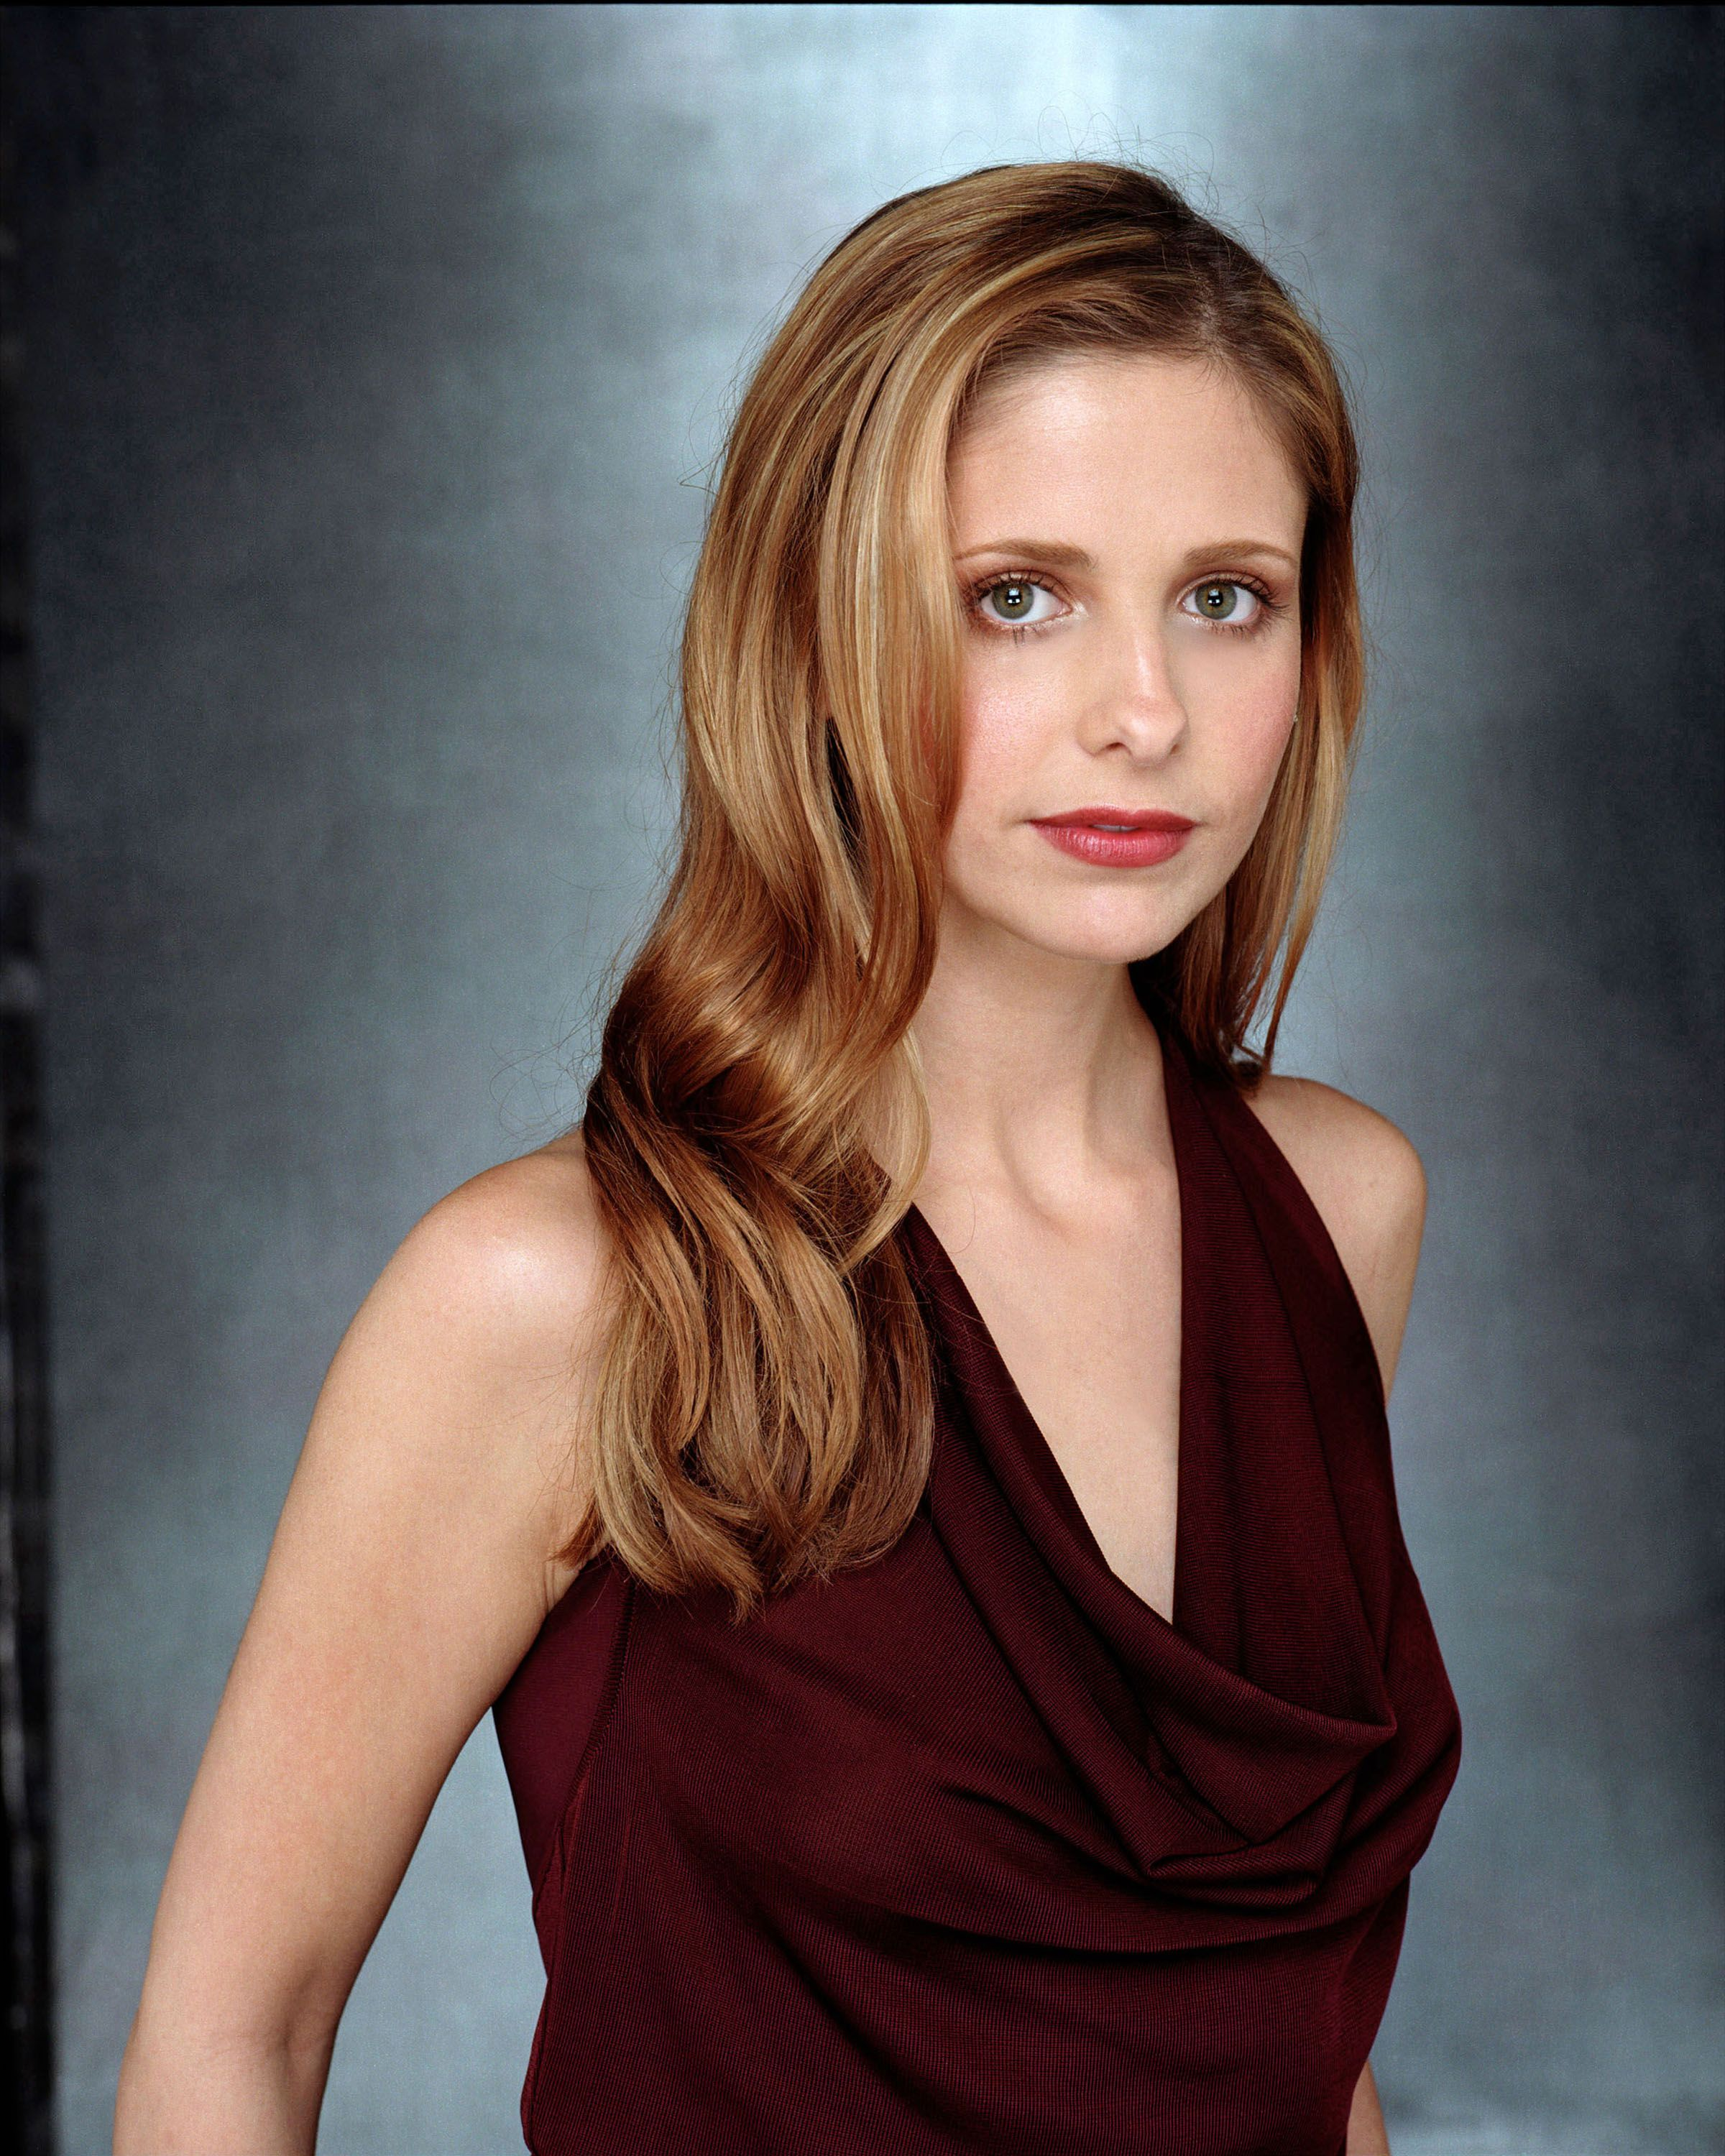 Sarah Michelle Gellar went off Hollywood radars / Getty Images